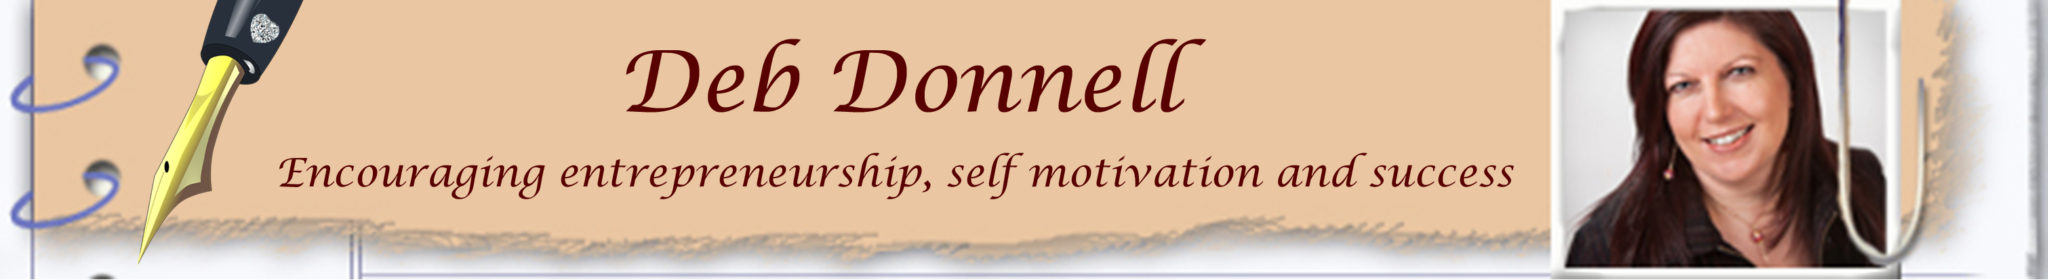 Deb Donnell